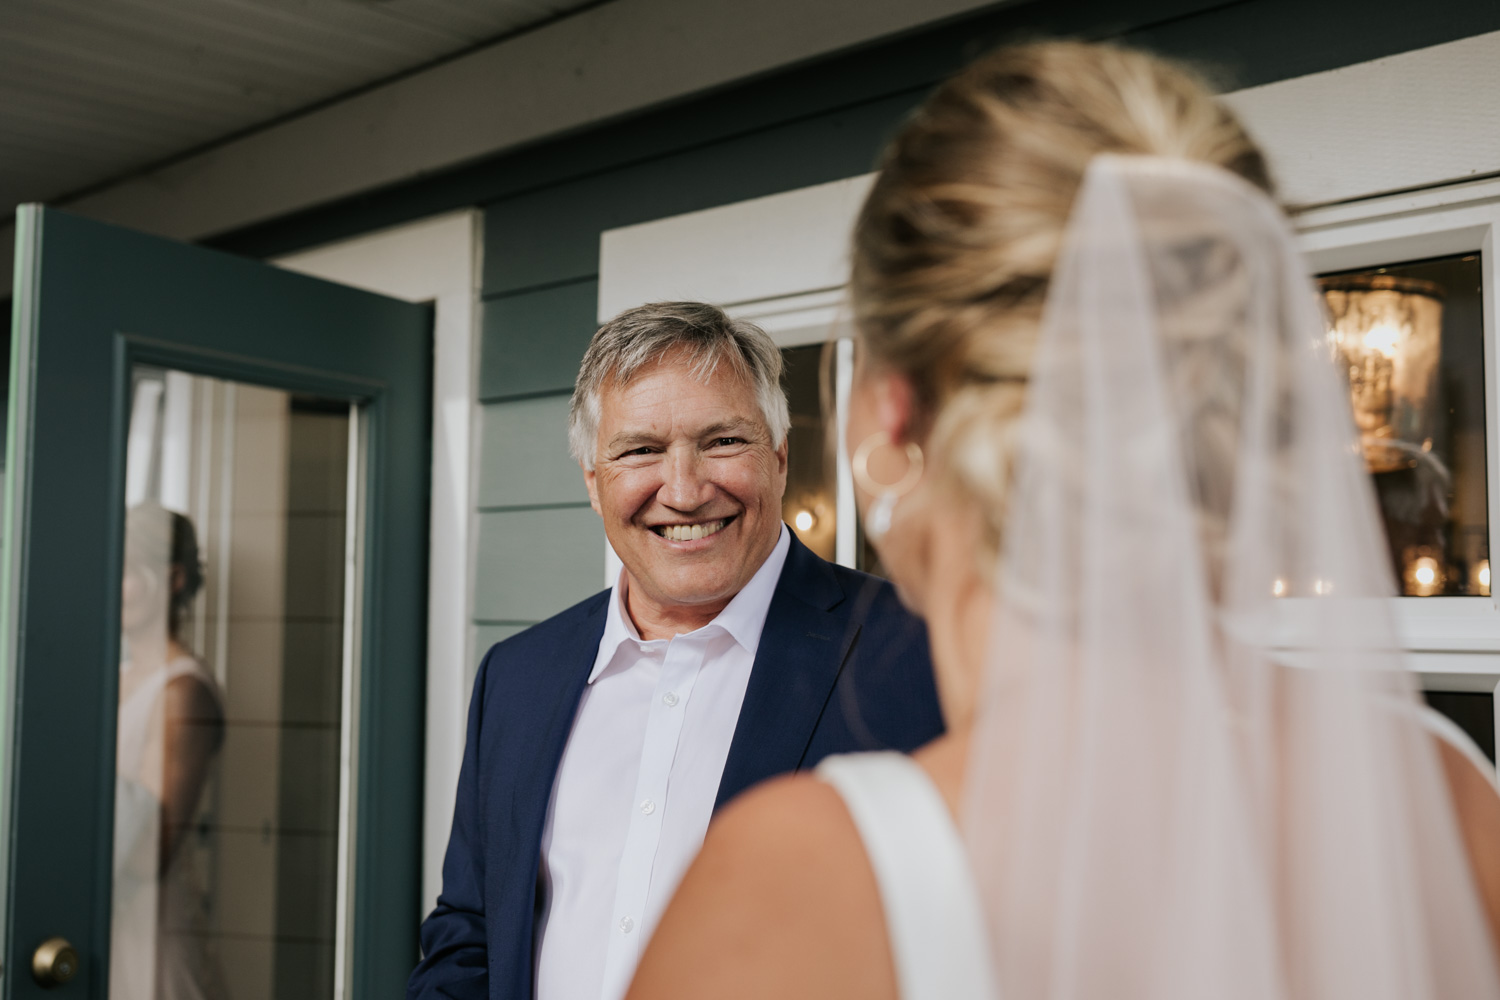 Emotional wedding moment when dad sees his daughter in her wedding dress for the very first time